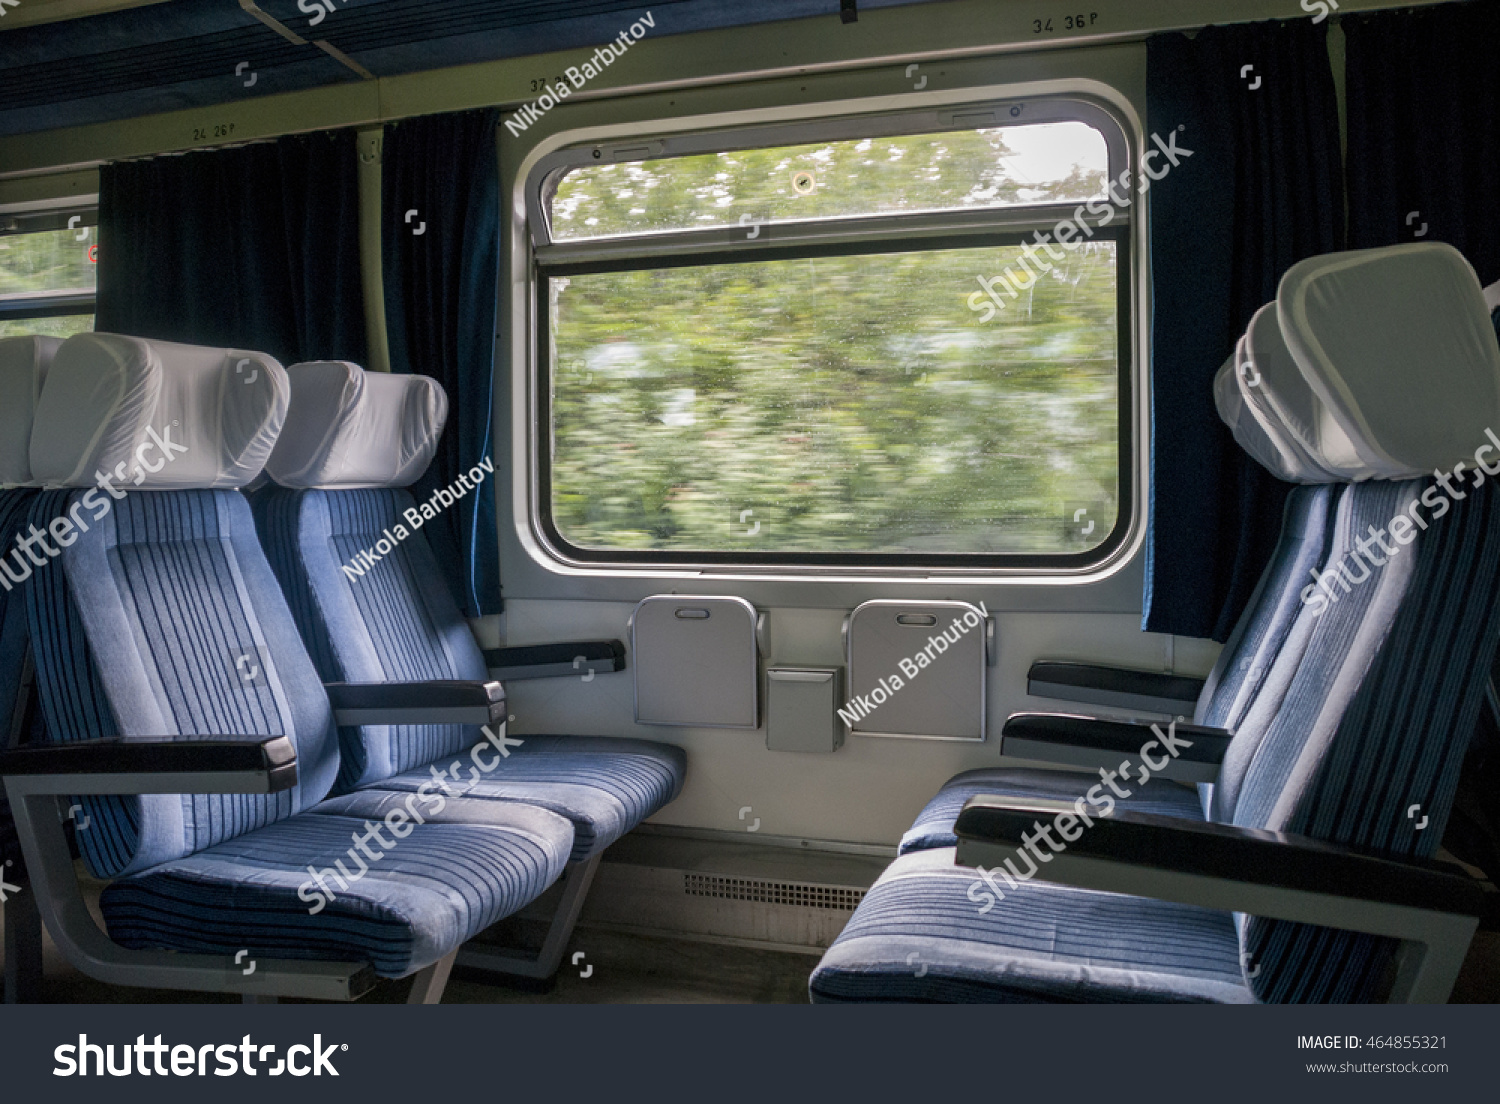 Travel by train with comfort. Coupe in trains